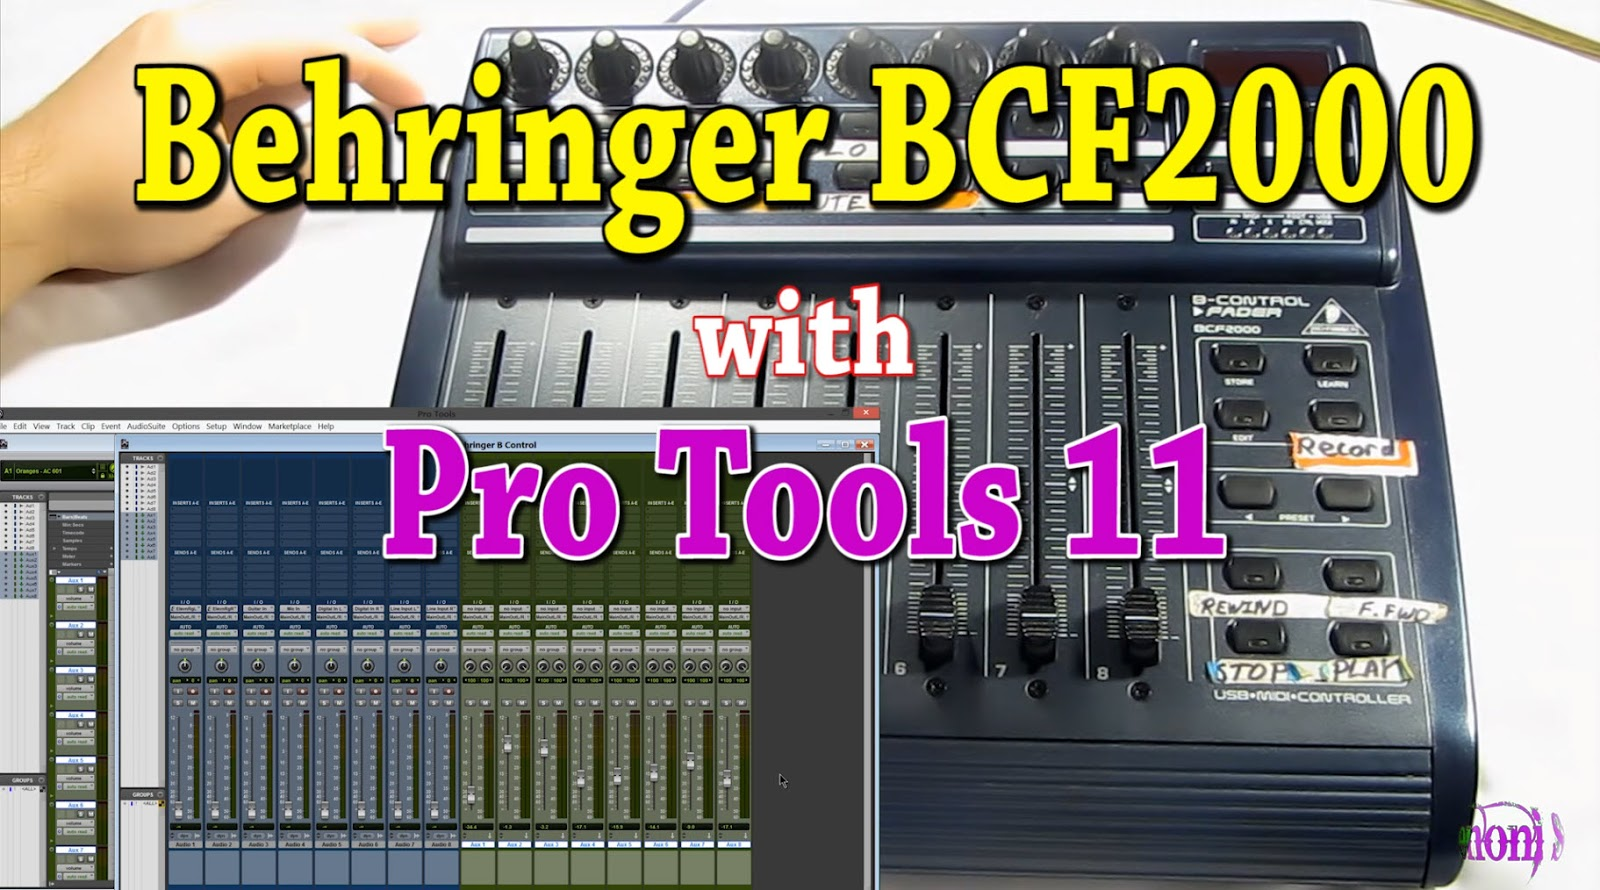 Pro Tools Quick Tips: Behringer BCF2000 Control Surface and